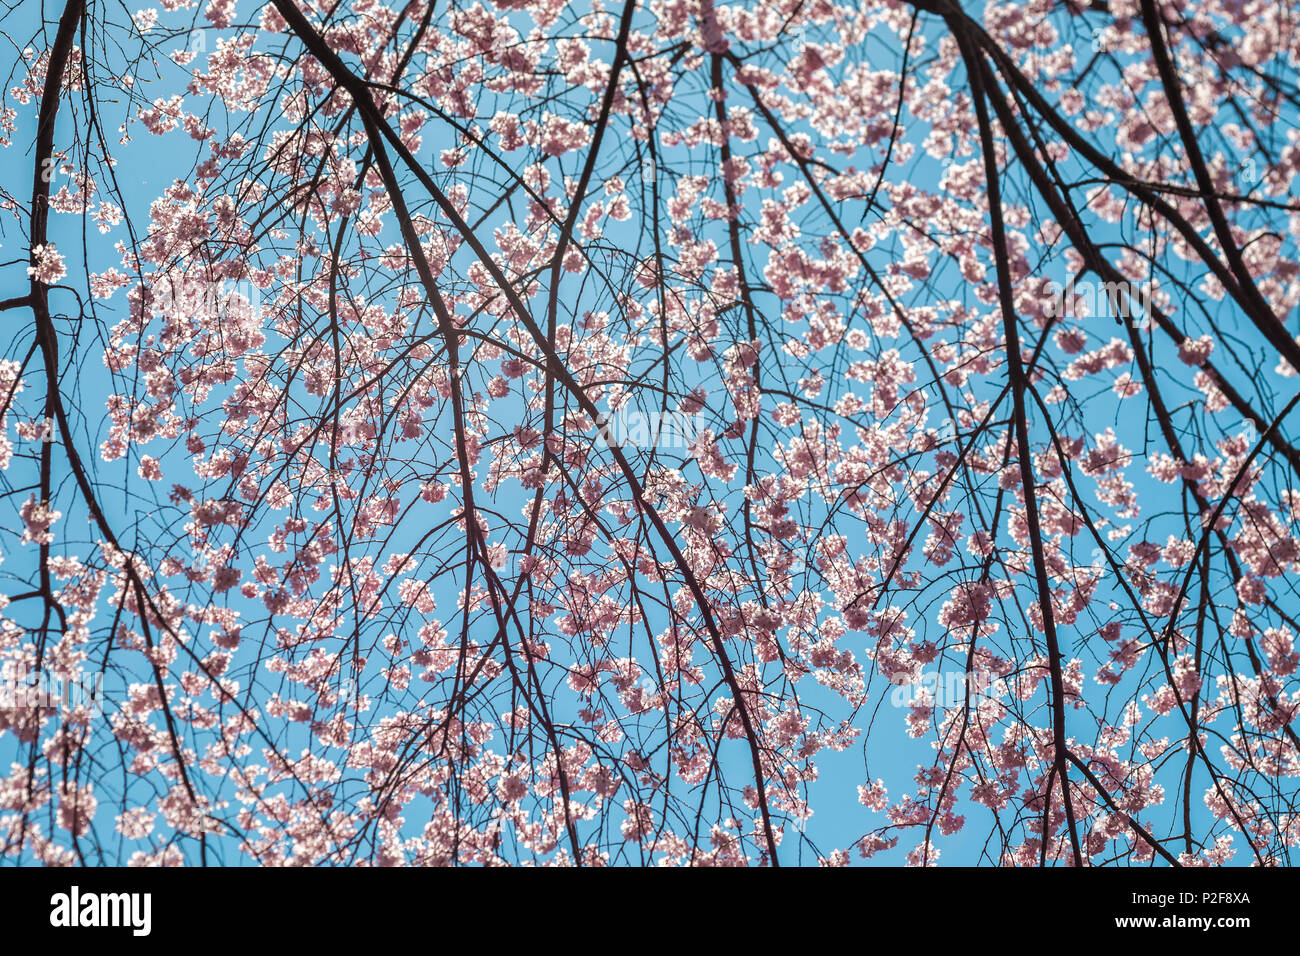 Branches of cherry tree with blossoms against cyan sky, Bunkyo-ku, Tokyo, Japan - Stock Image